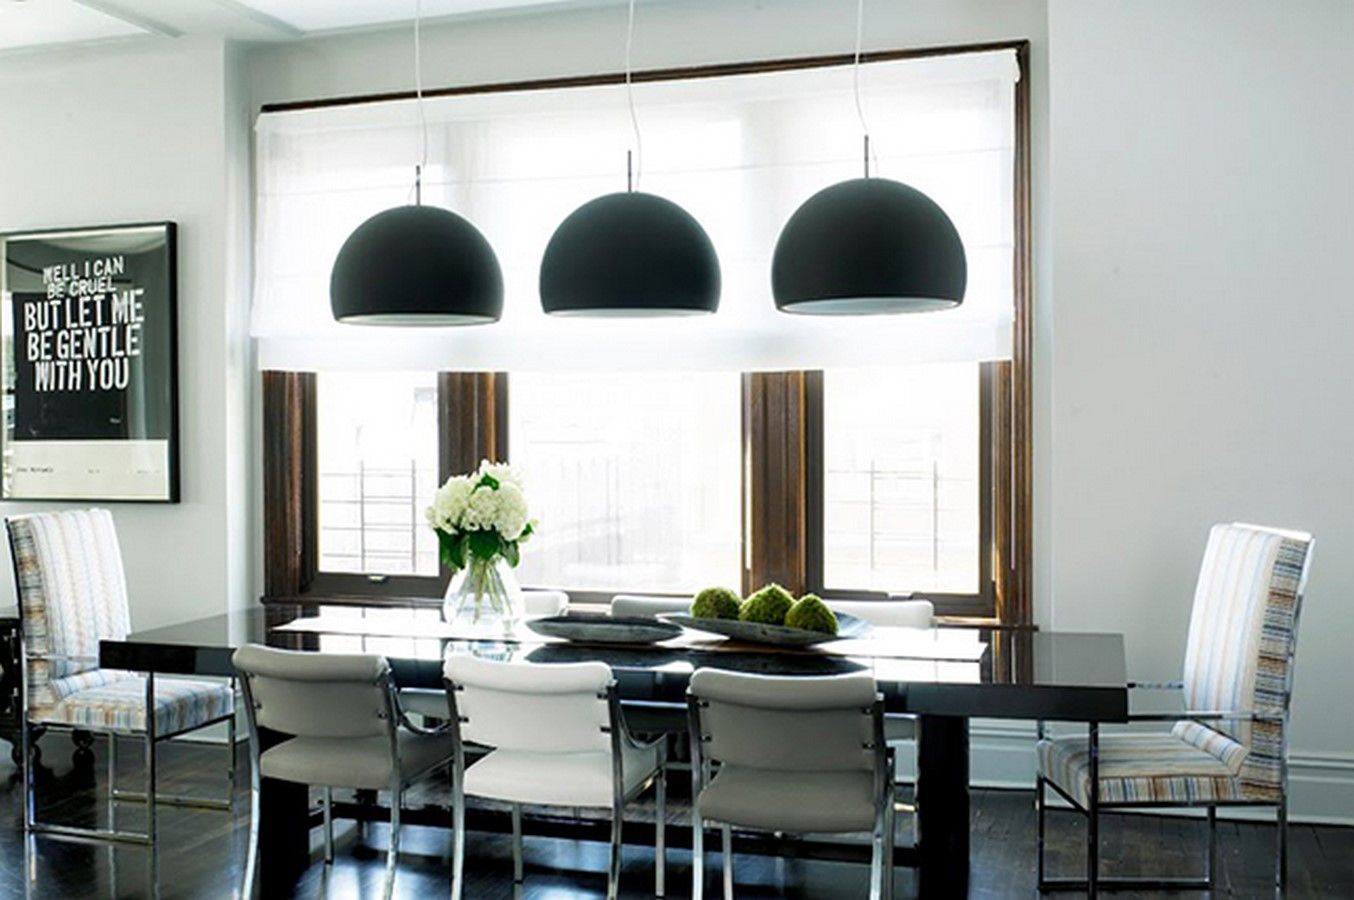 10 Dining rooms ideas that can enhance the space - Sheet7